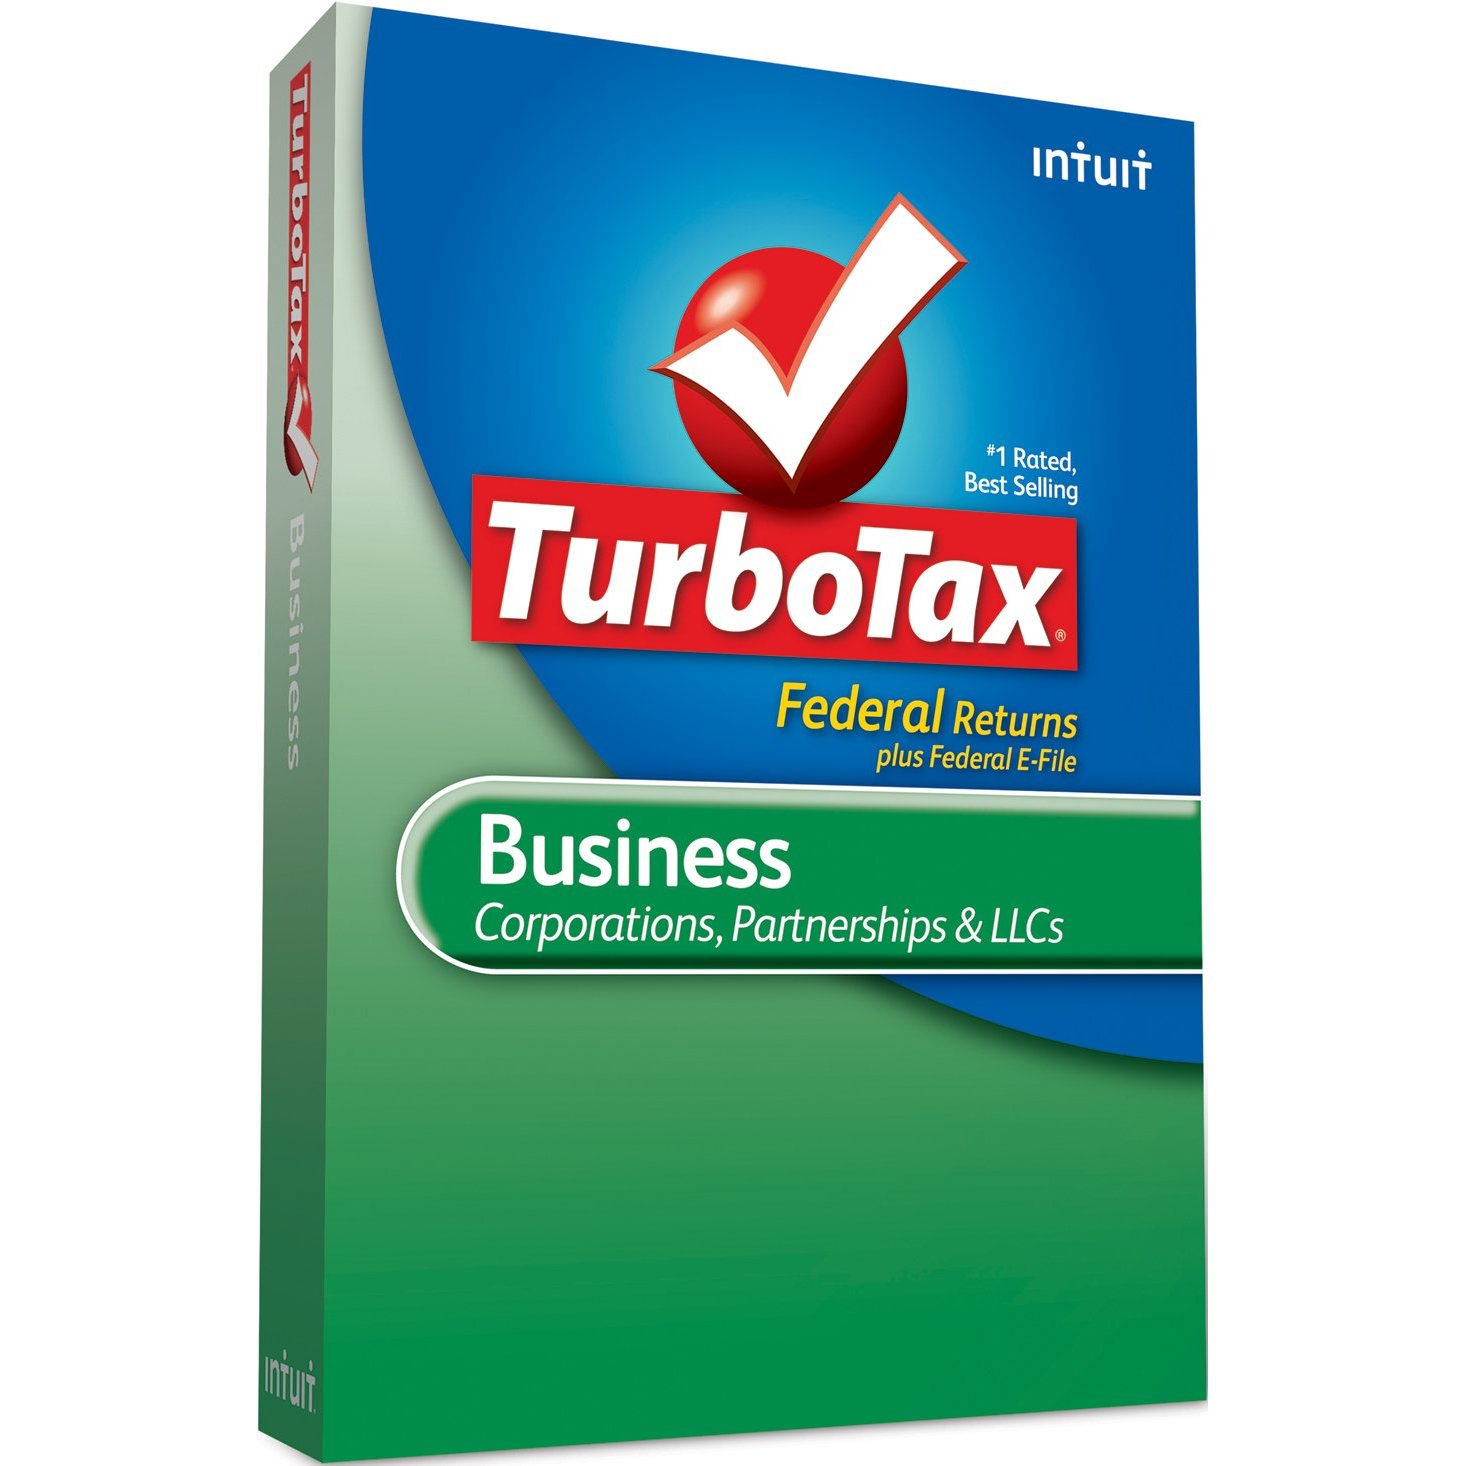 TurboTax Business 2010 Corporations, Partnerships,LLC